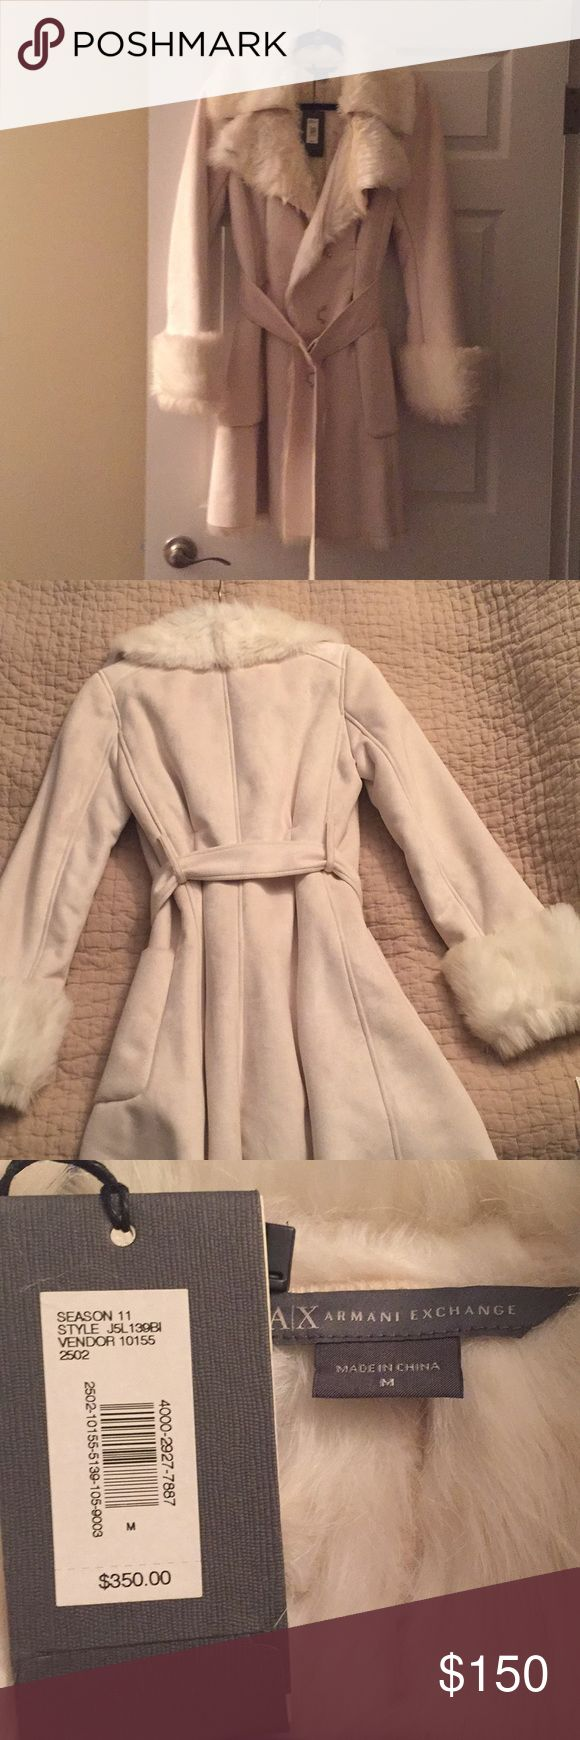 Ivory A/X Armani Exchange Coat Medium Ivory A/X Armani Exchange Coat Medium. Never worn, tags still attached. Faux fur inside. Super warm and cozy. Excellent condition. I would just recommend dry cleaning as jacket was hung in closet uncovered A/X Armani Exchange Jackets & Coats Trench Coats